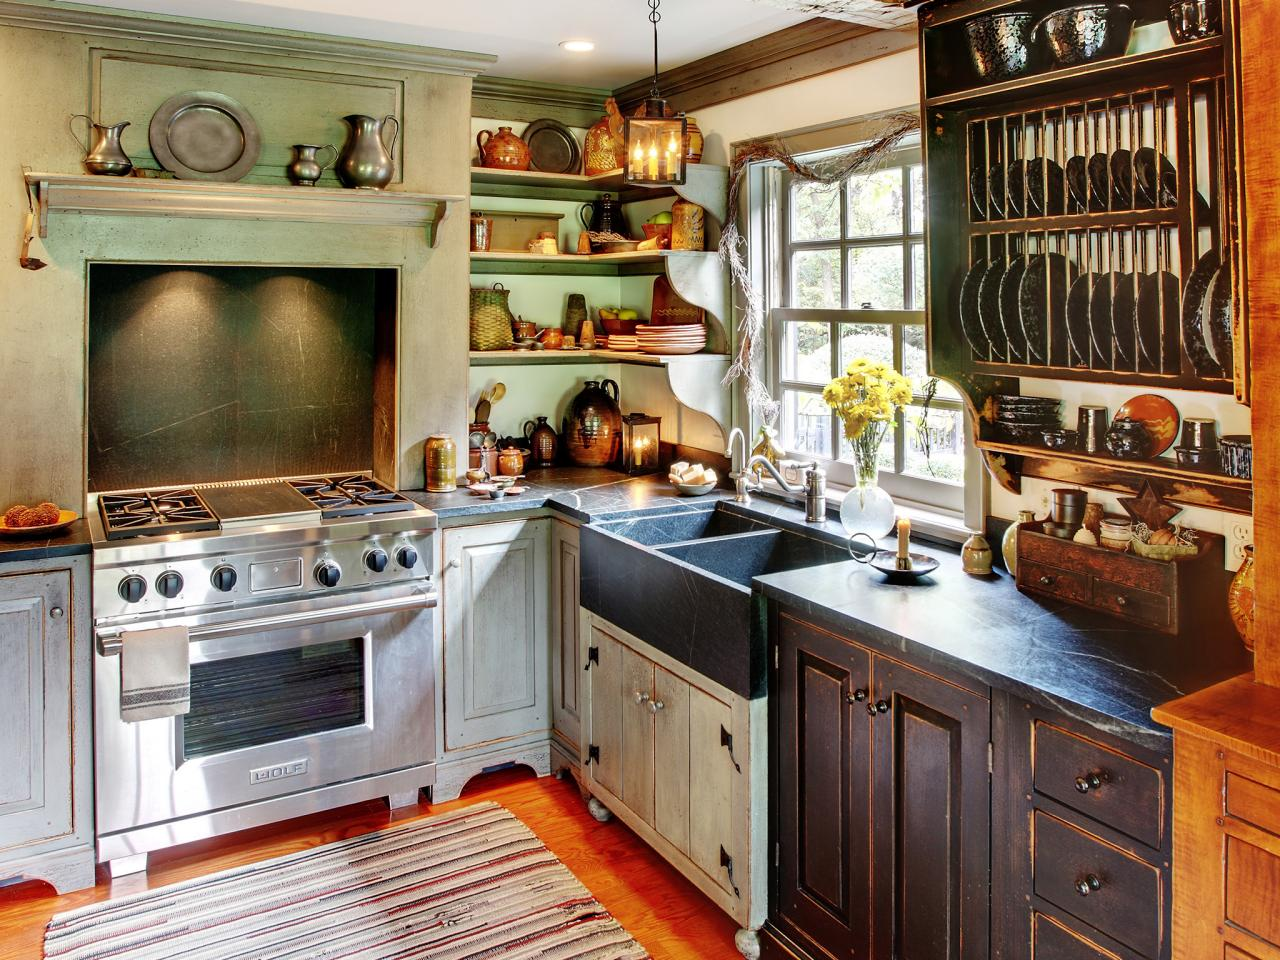 Recycled Kitchen Cabinets Ideas & Tips From HGTV